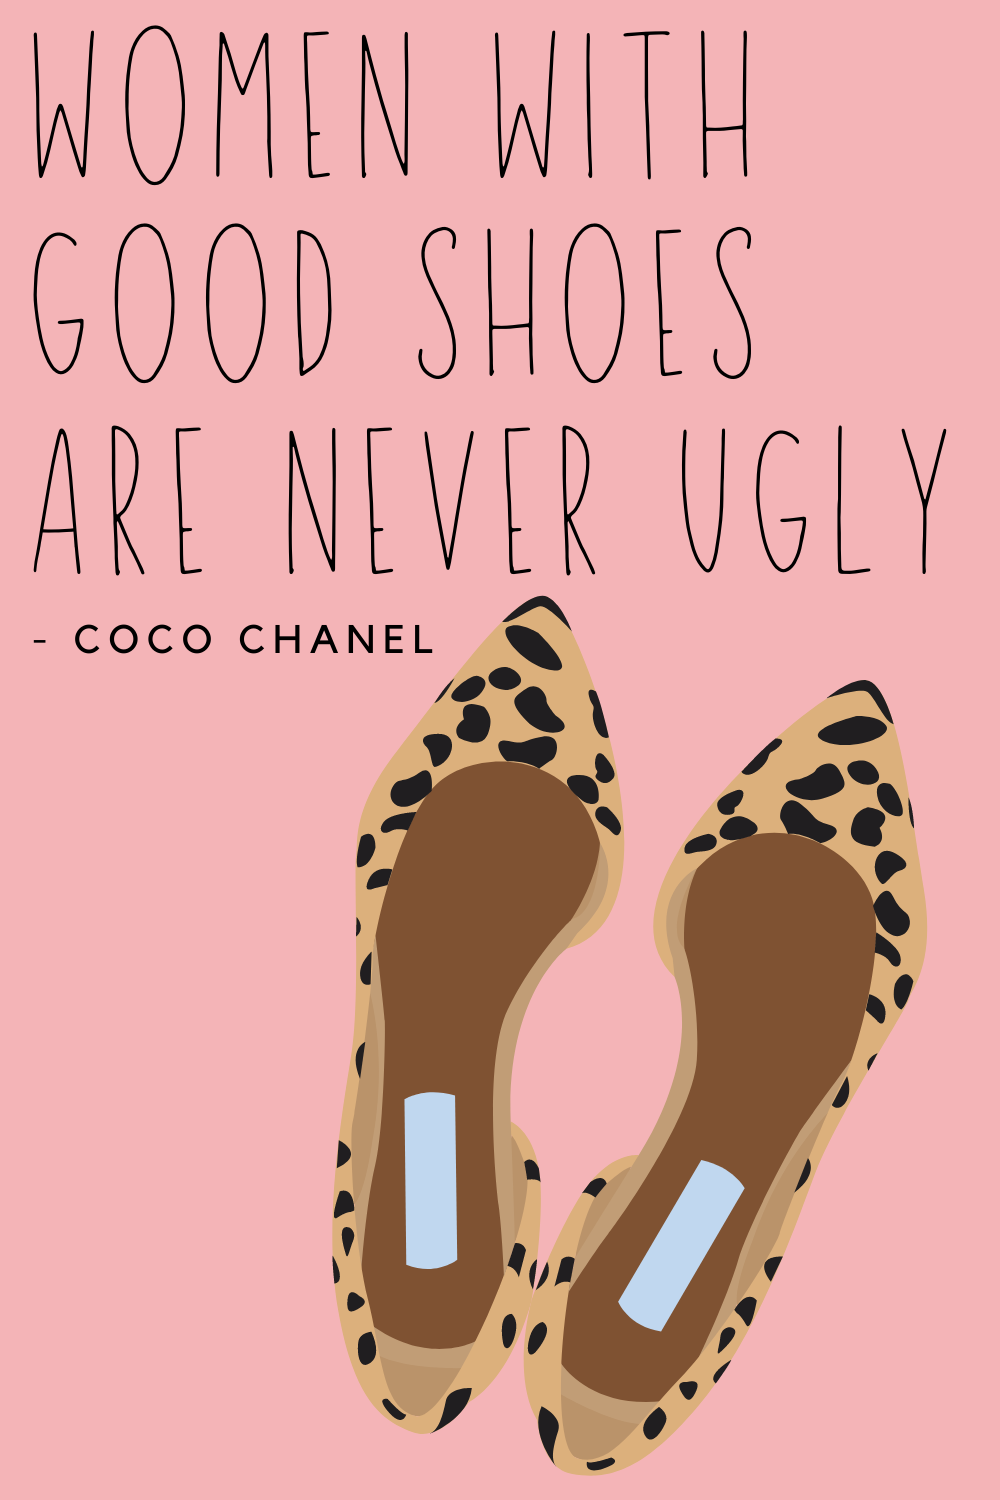 fashion quote ideas by Coco Chanel